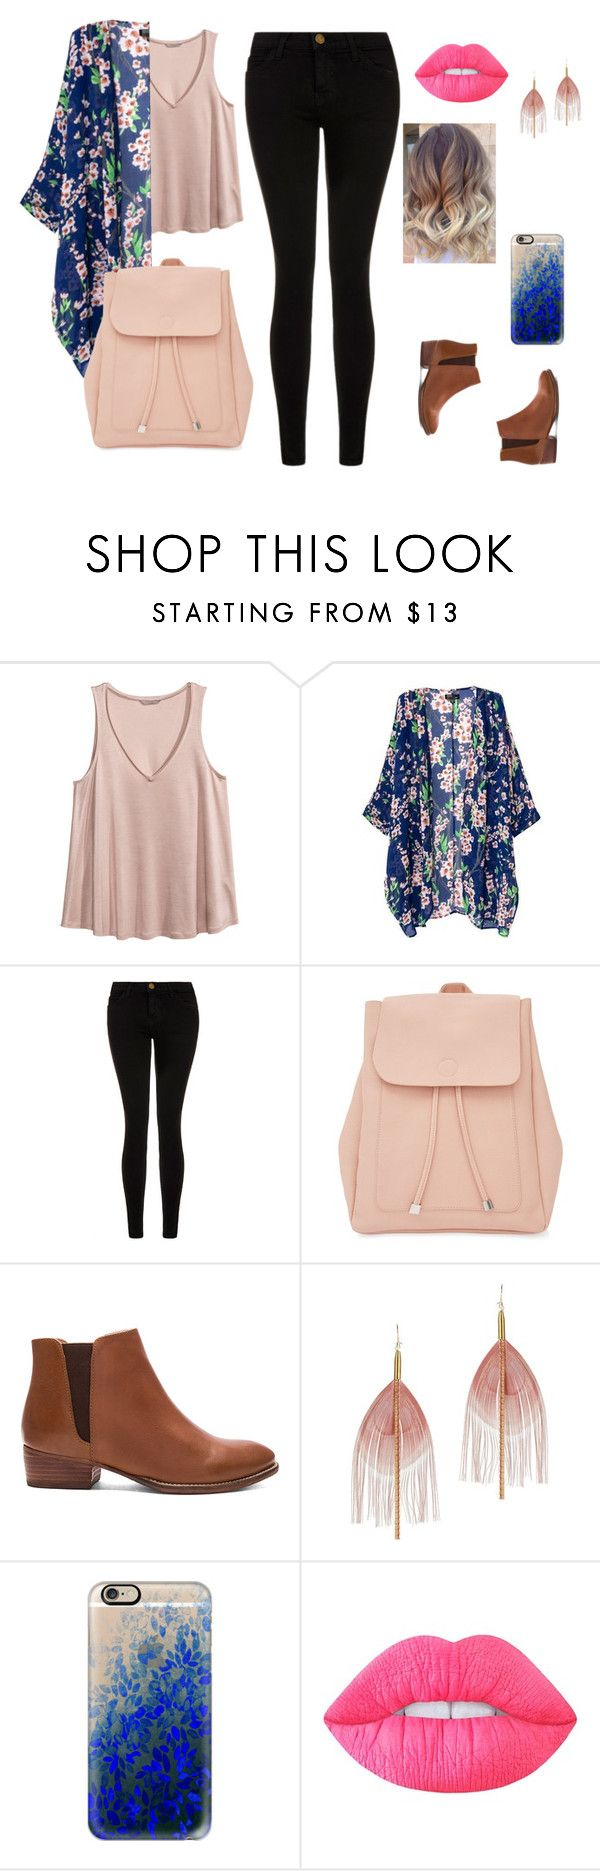 """casual and fresh"" by daniblack03 on Polyvore featuring moda, H&M, Current/Elliott, New Look, Seychelles, Serefina, Casetify y Lime Crime"